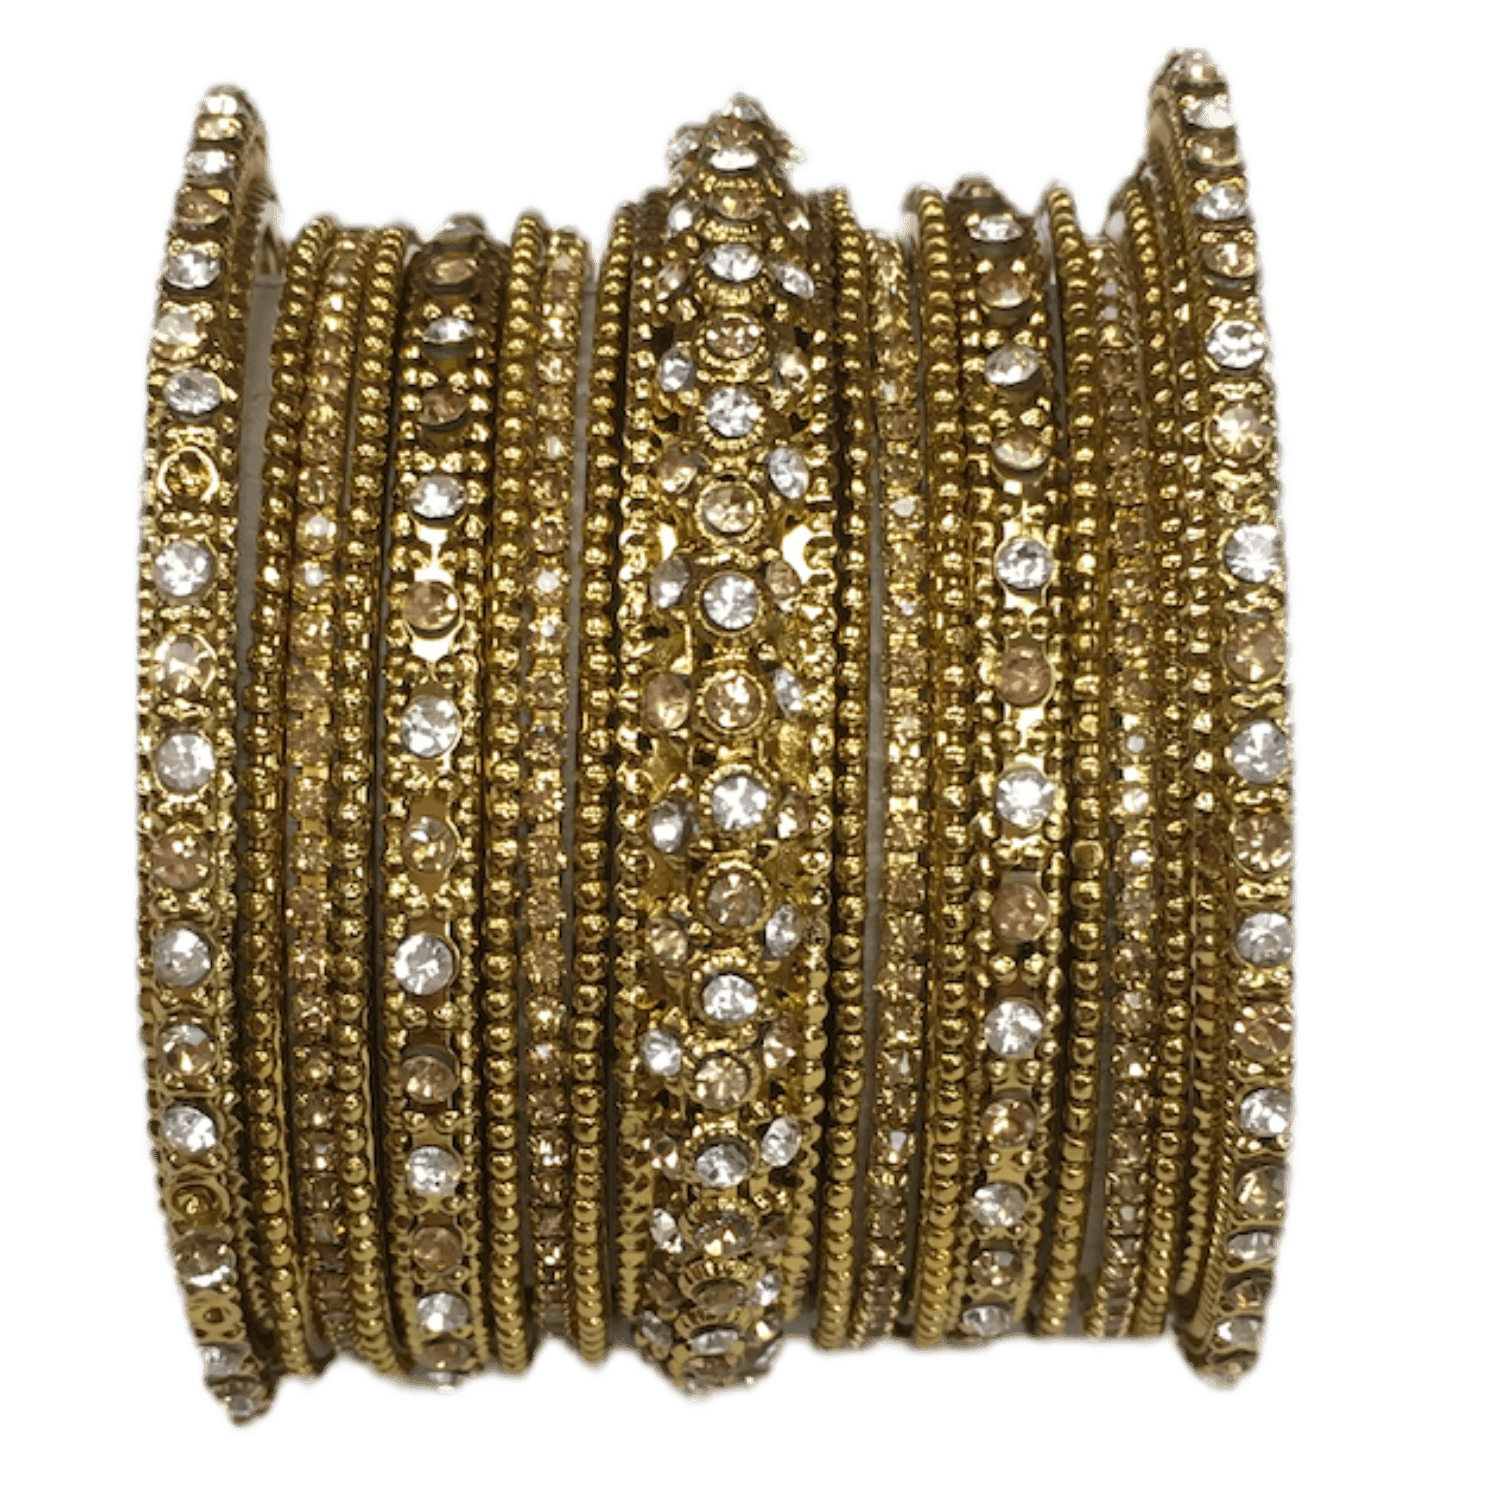 A set of 17 Gold / Clear stone Bangles set - Bollywood, Weddings, Fancy Dress JAN6642 T0519 - Prachy Creations